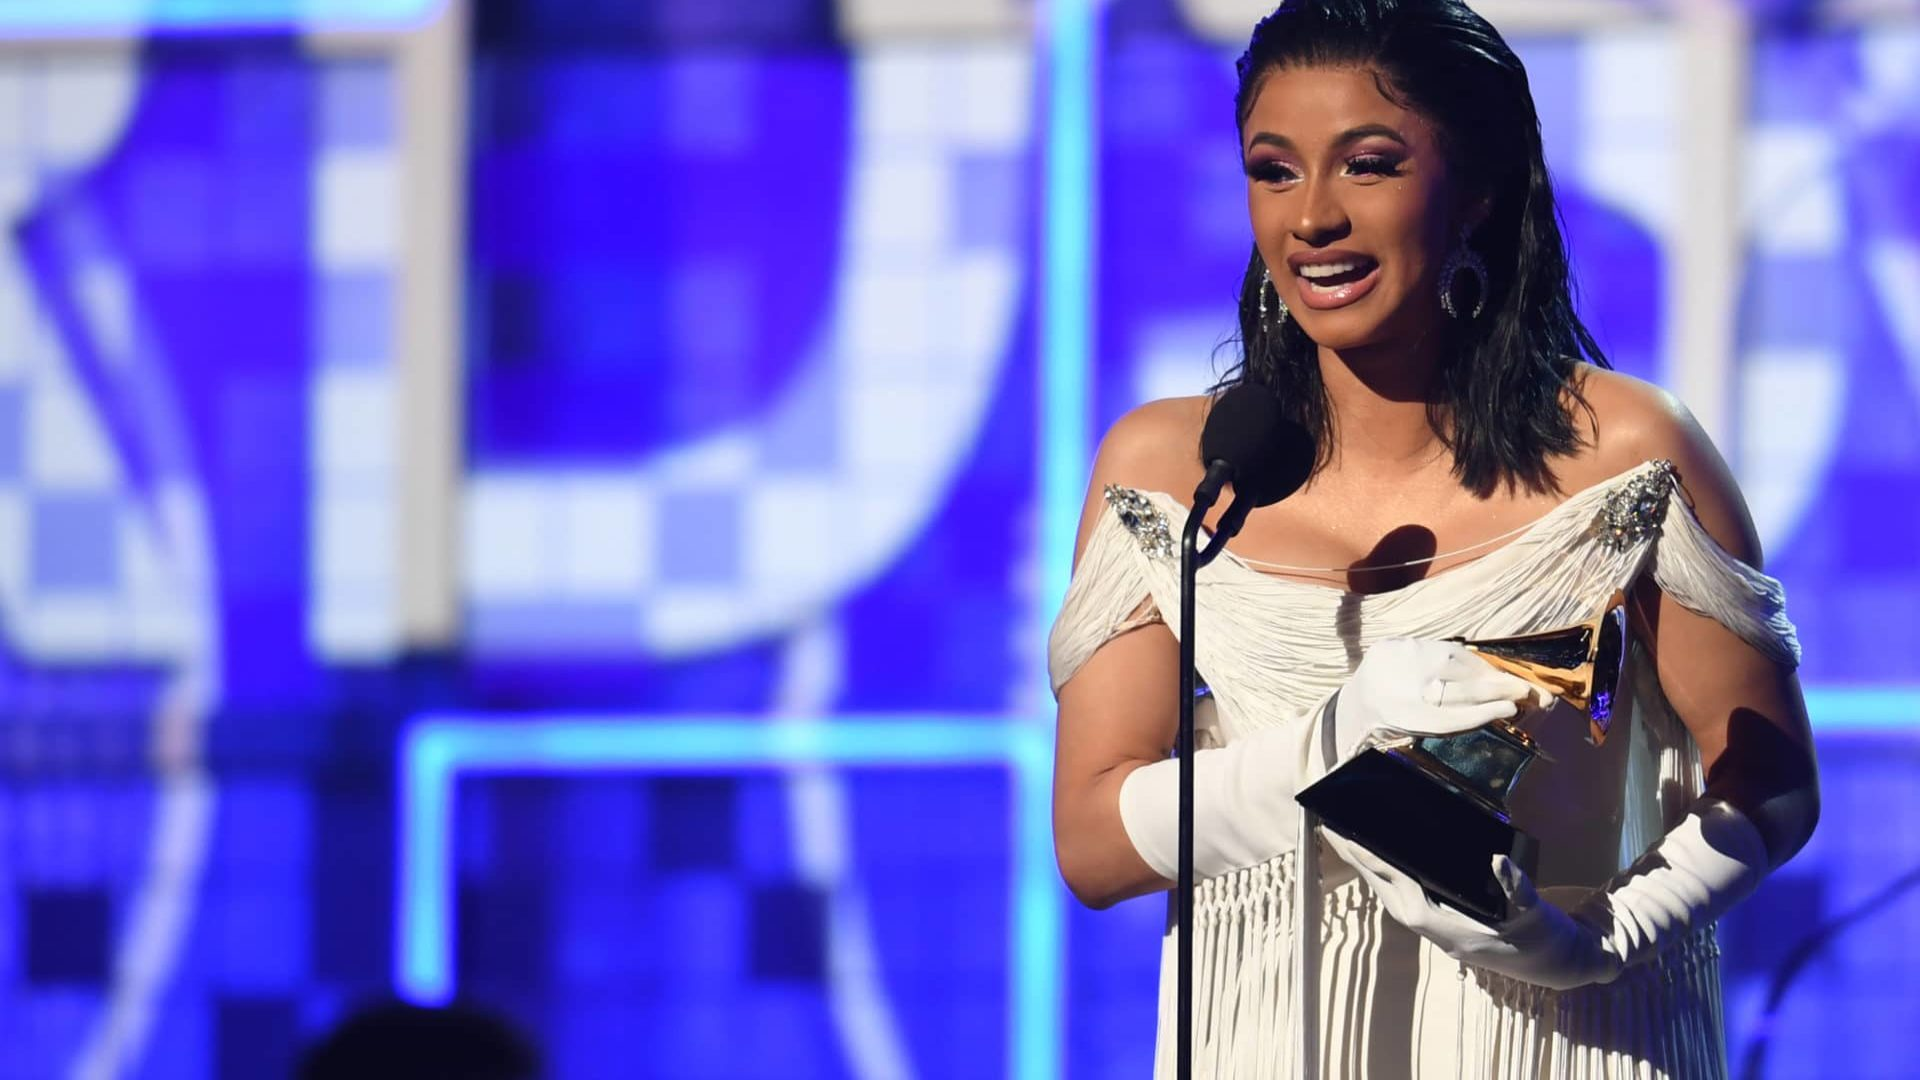 Cardi B Becomes First Female Solo Artist To Win Best Rap Album At The Grammys